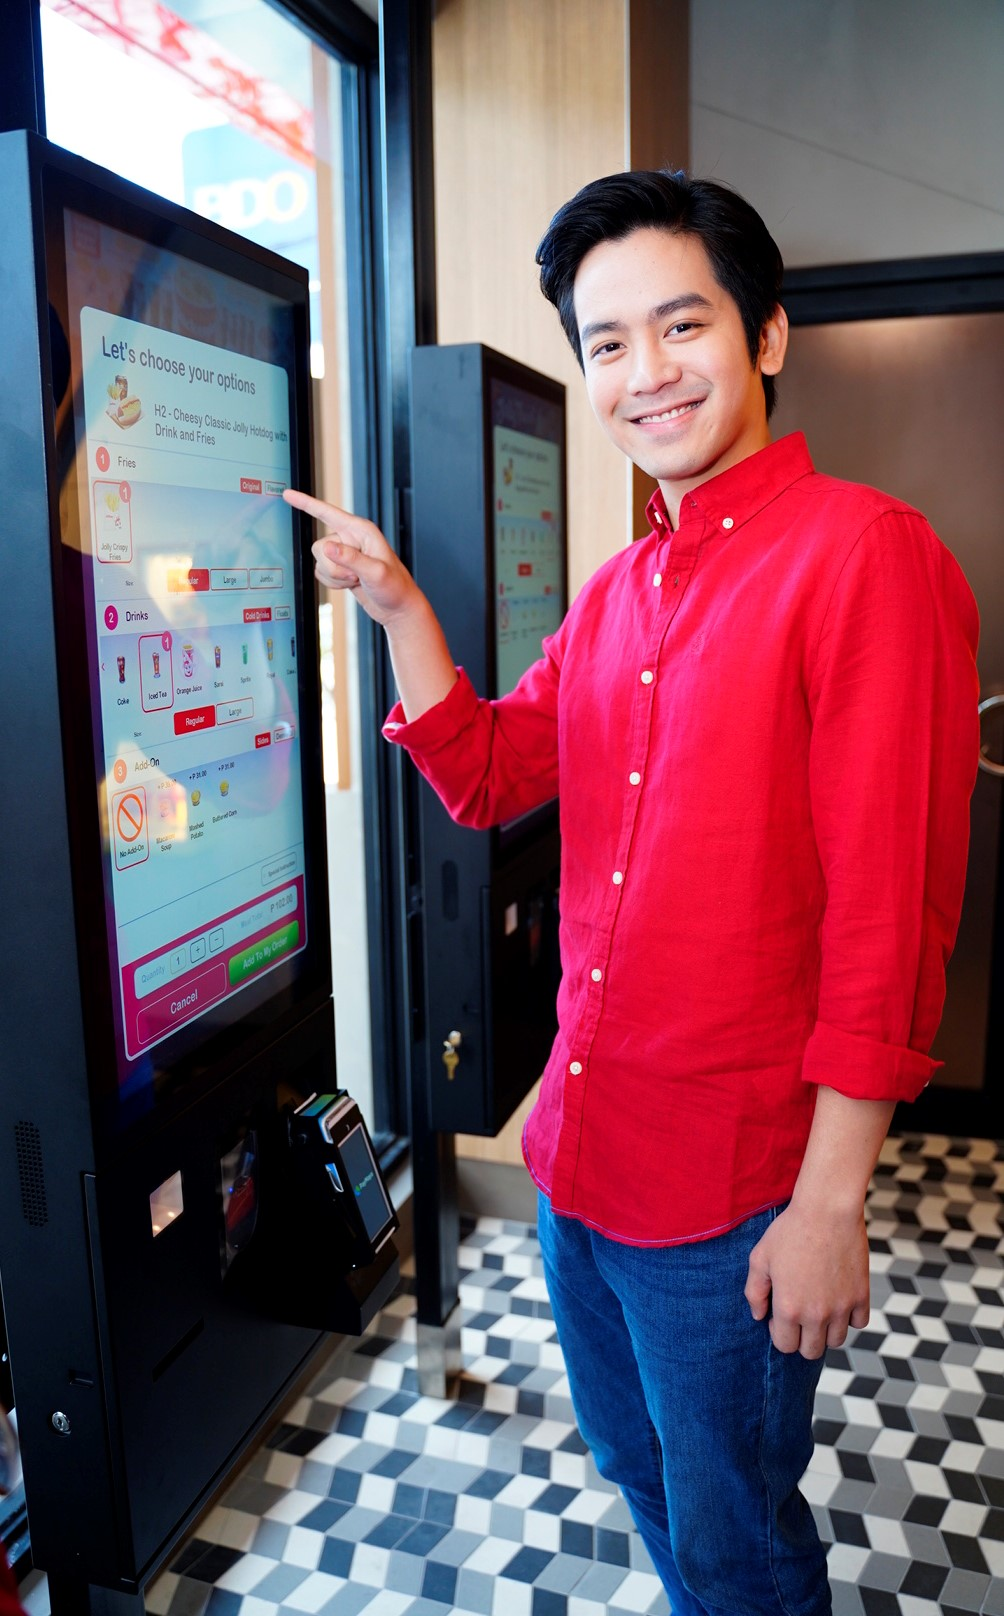 SELF-ORDER KIOSKS. Joshua Garcia tries the self-order kiosk at the Level Up Joy Store in Katipunan.